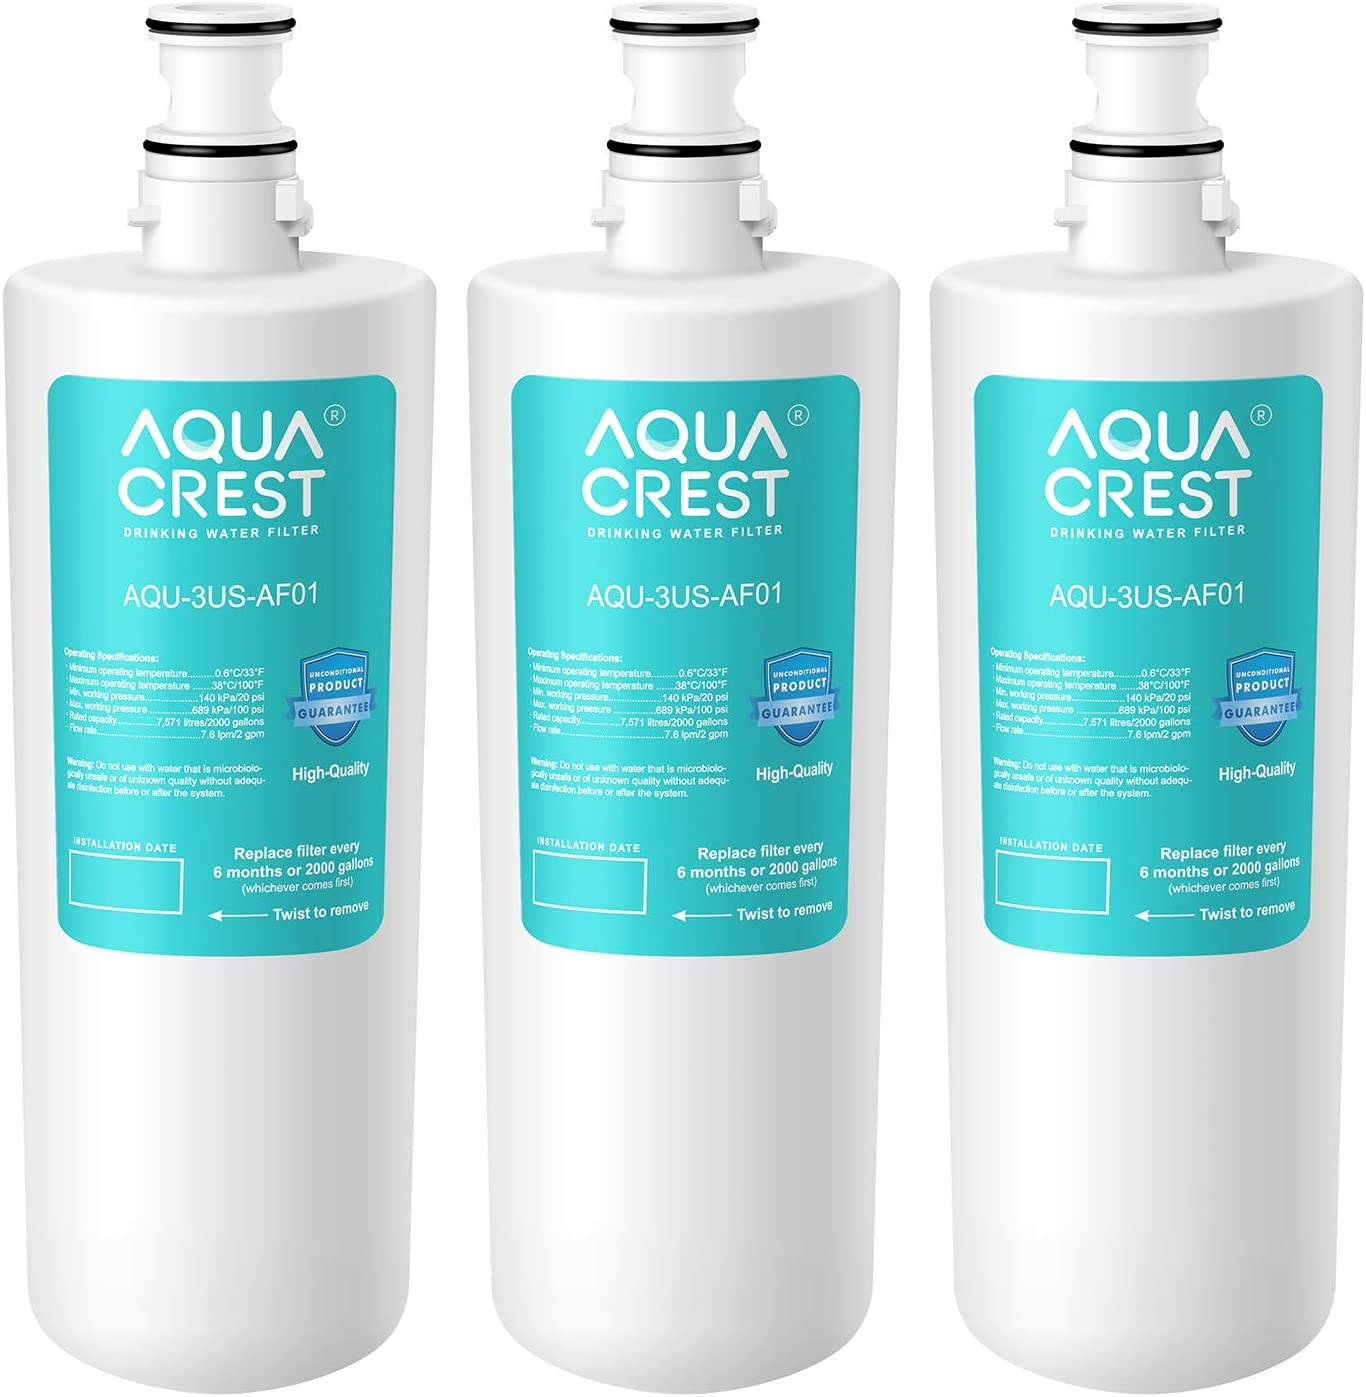 AQUACREST 3US-AF01 Undersink Water Filter, Compatible with Filtrete Standard 3US-AF01, 3US-AS01, Aqua-Pure AP Easy C-CS-FF, Whirlpool WHCF-SRC, WHCF-SUFC, WHCF-SUF, Pack of 3